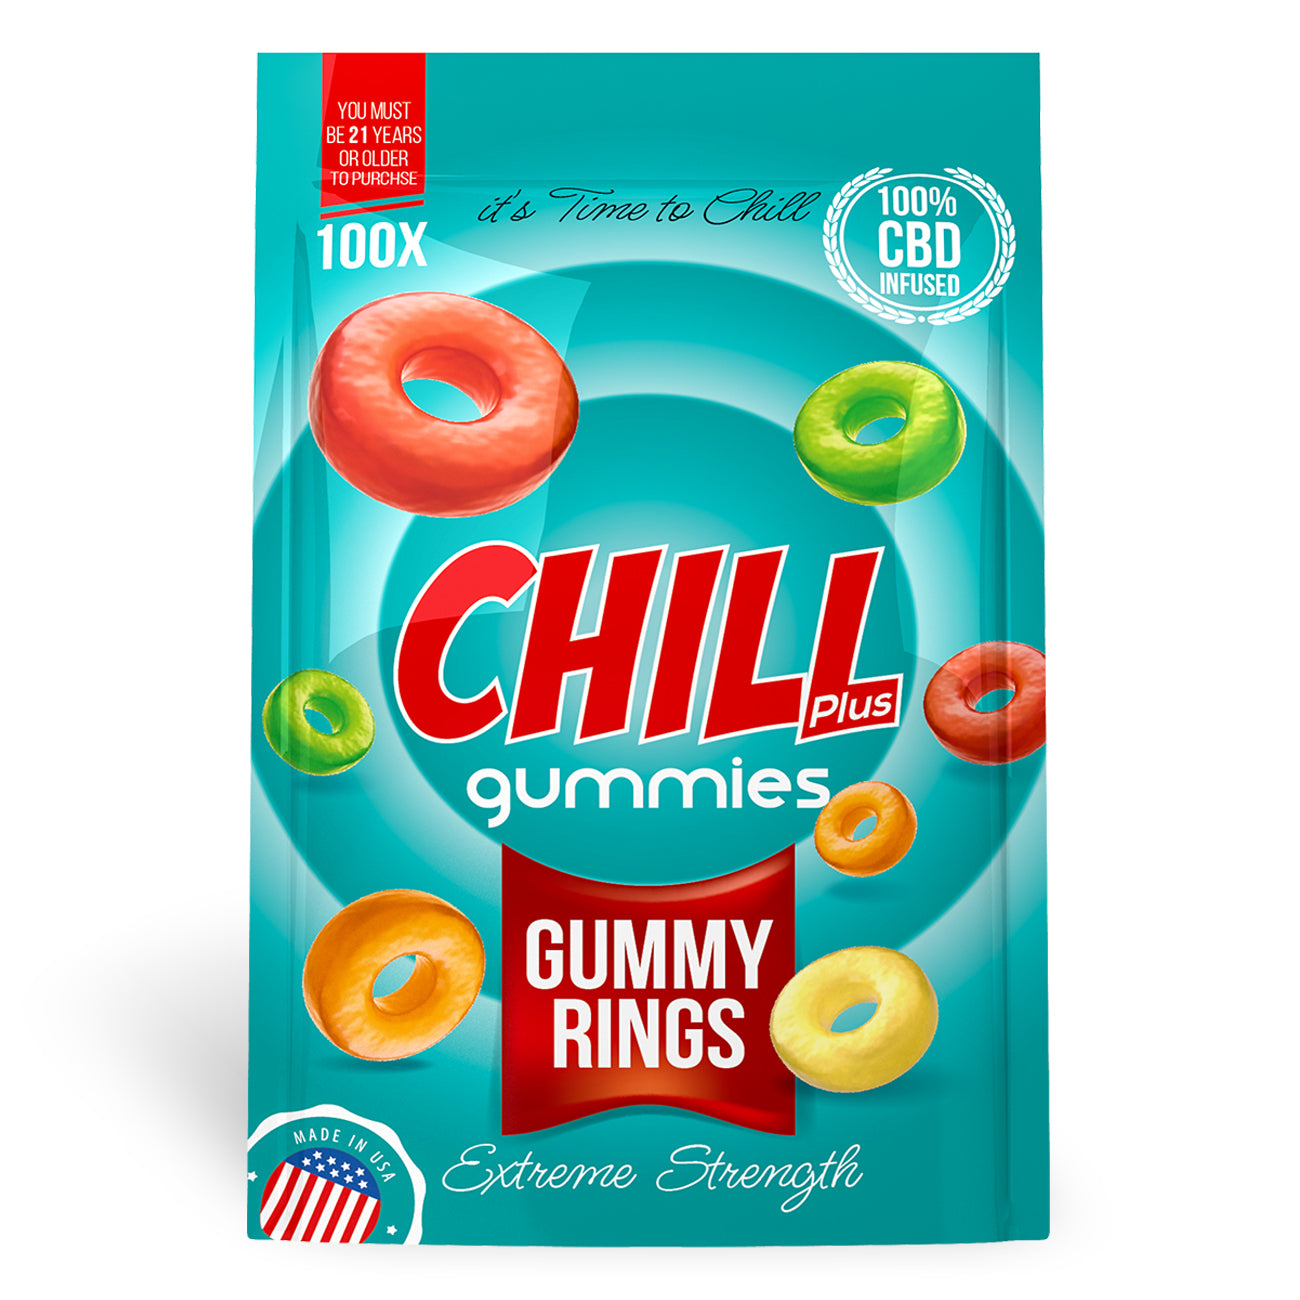 Chill Plus Gummies - CBD Infused Gummy Rings